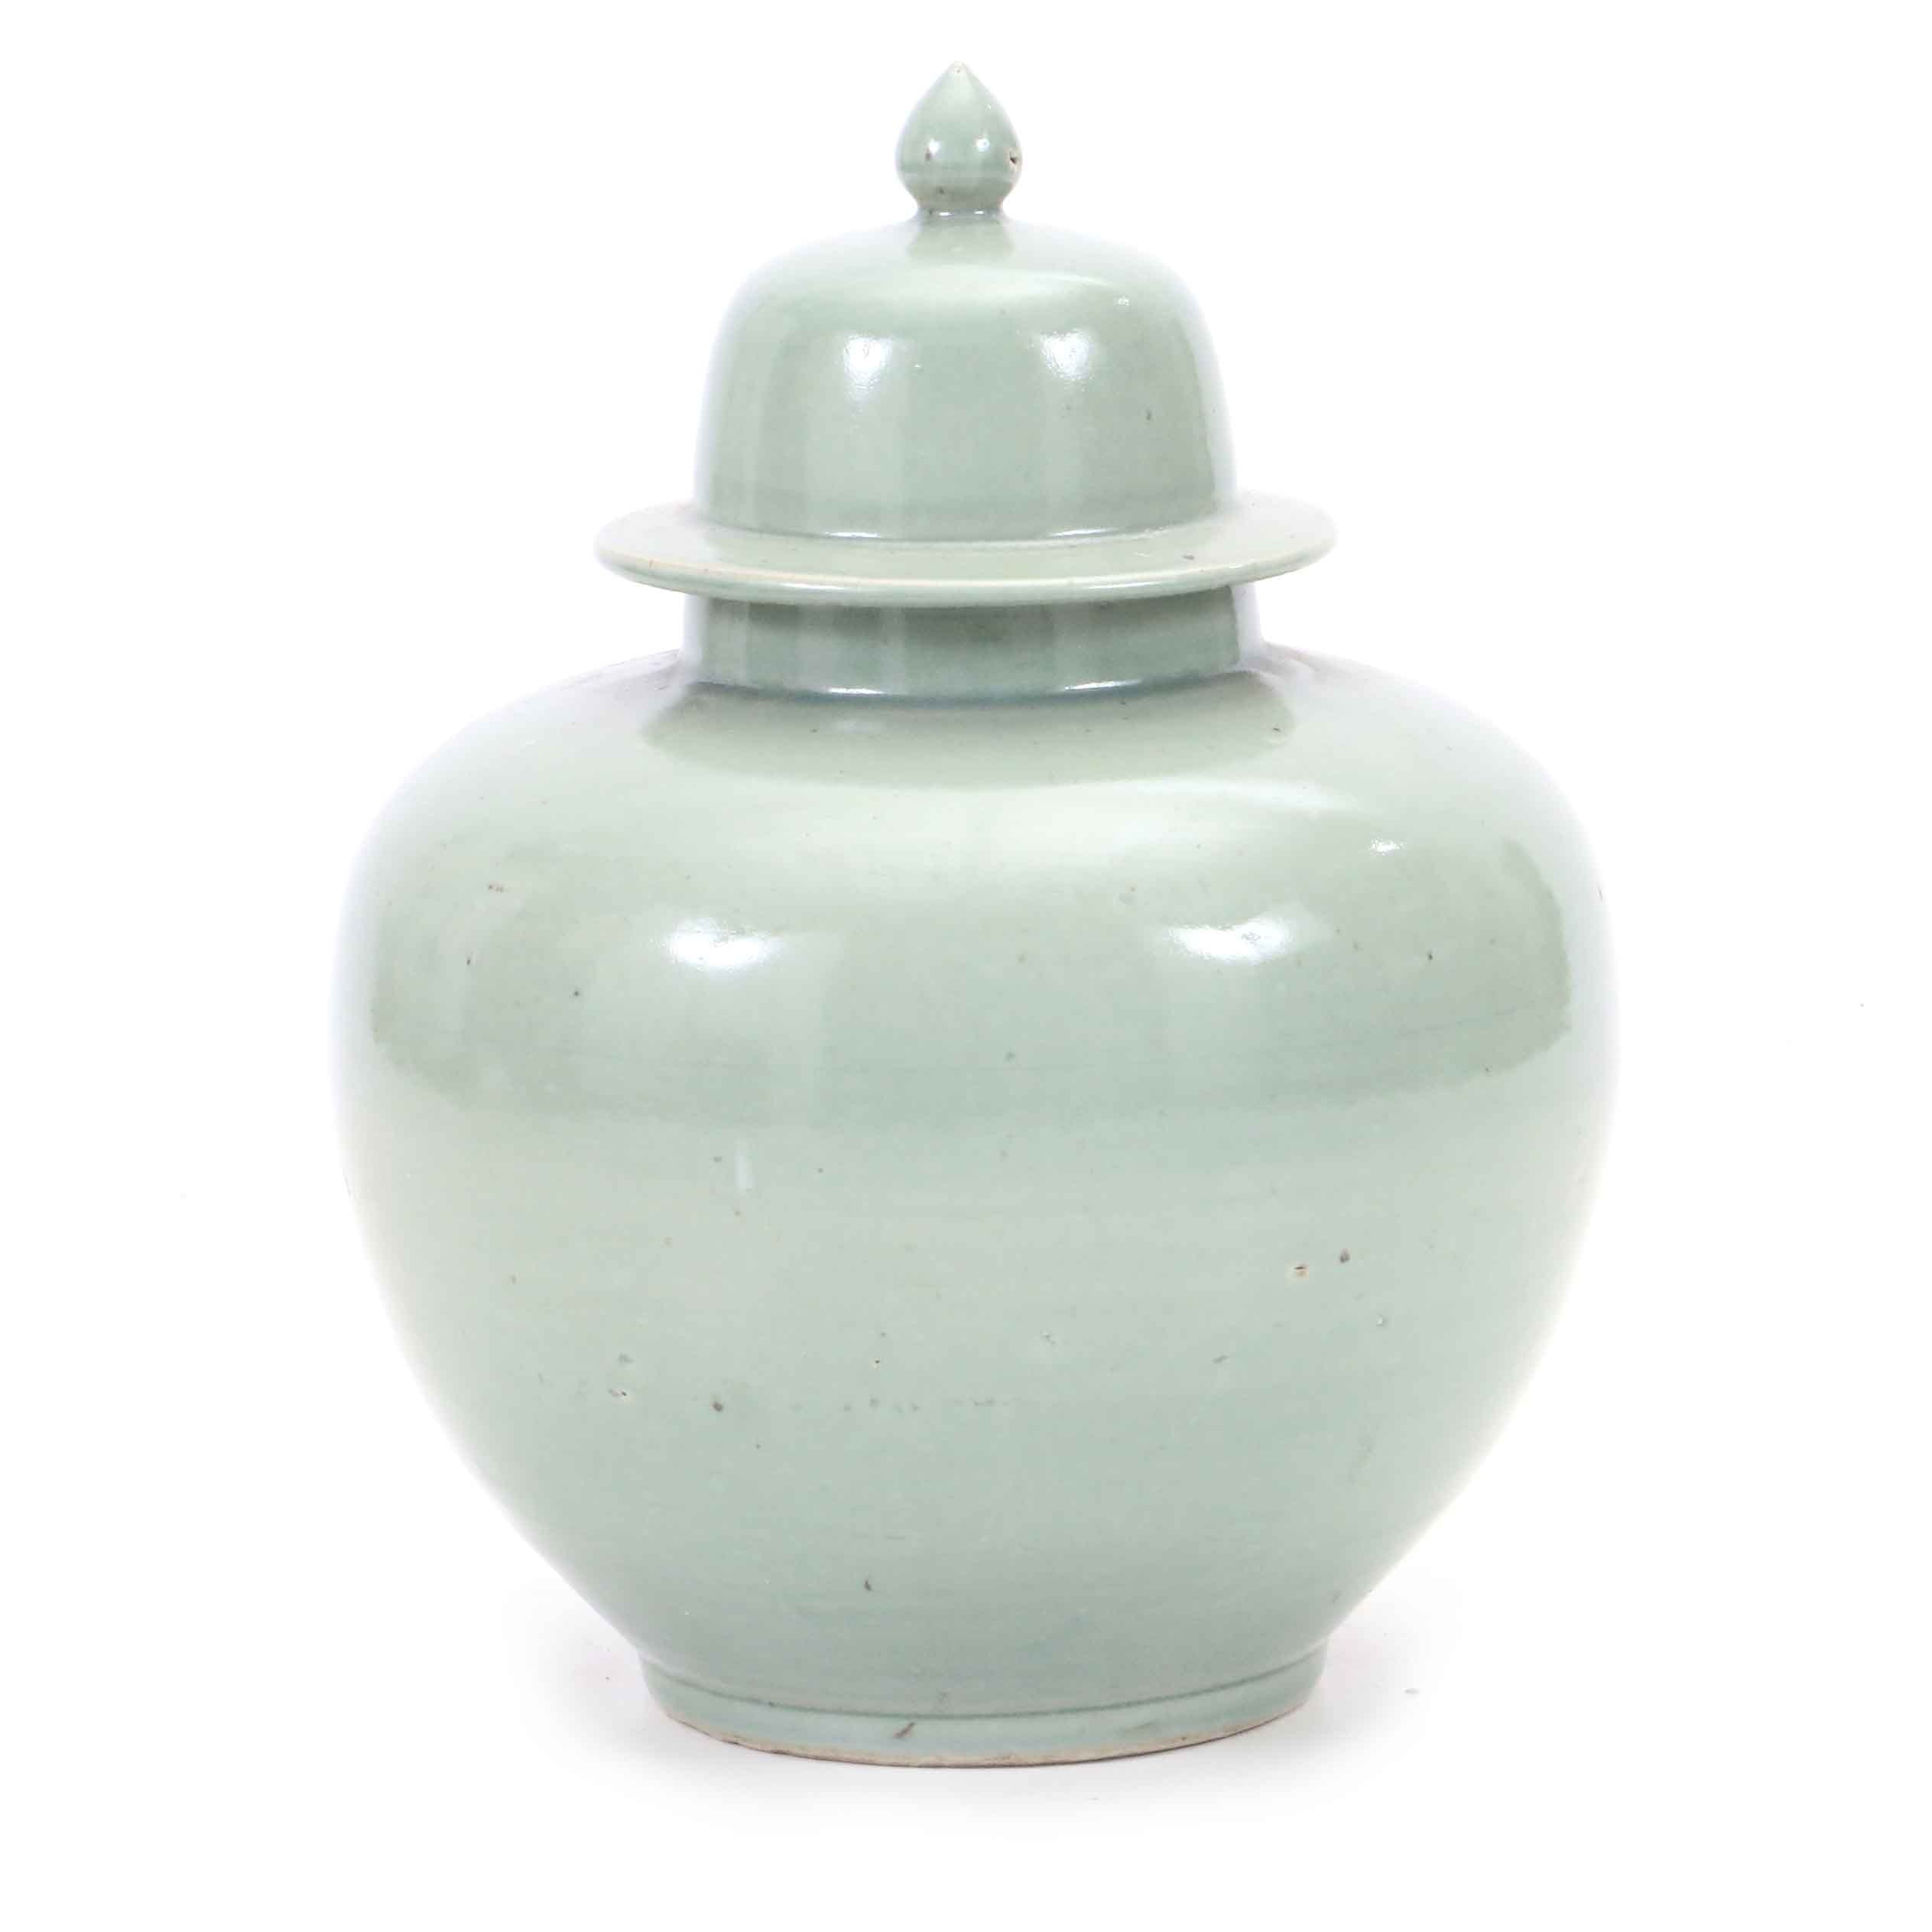 Chinese Celadon Ceramic Ginger Jar